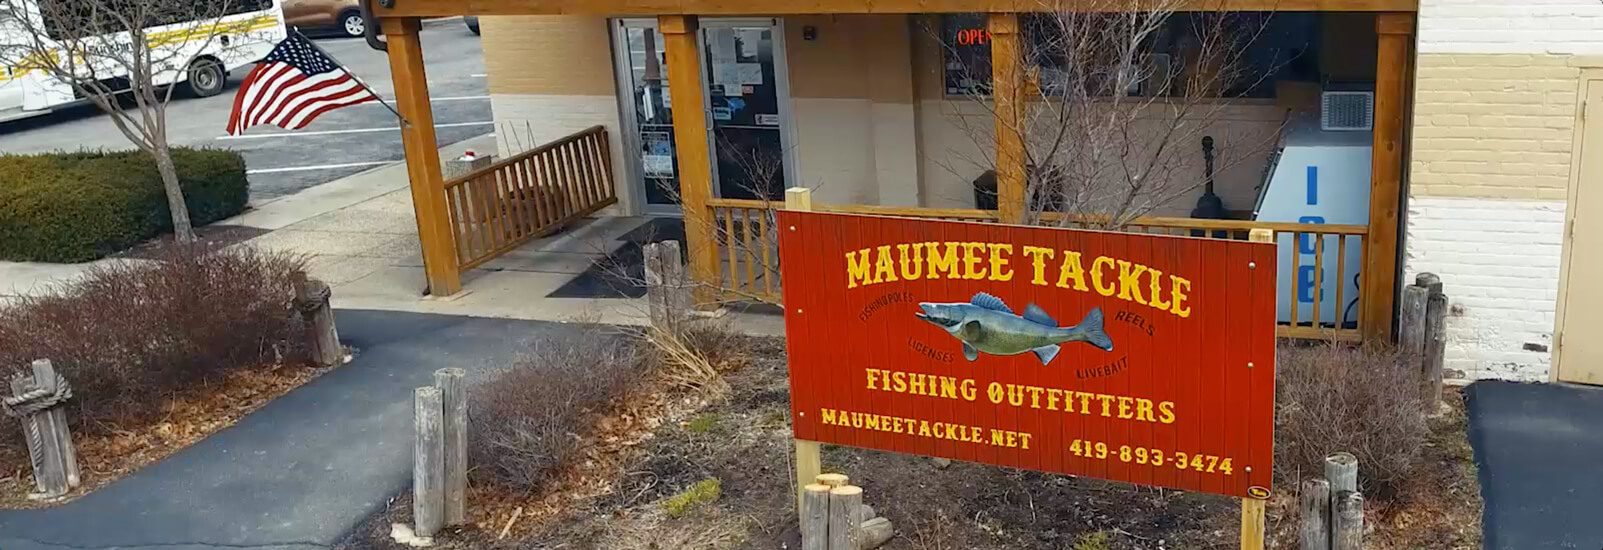 Maumee Tackle and Fishing Outfitters